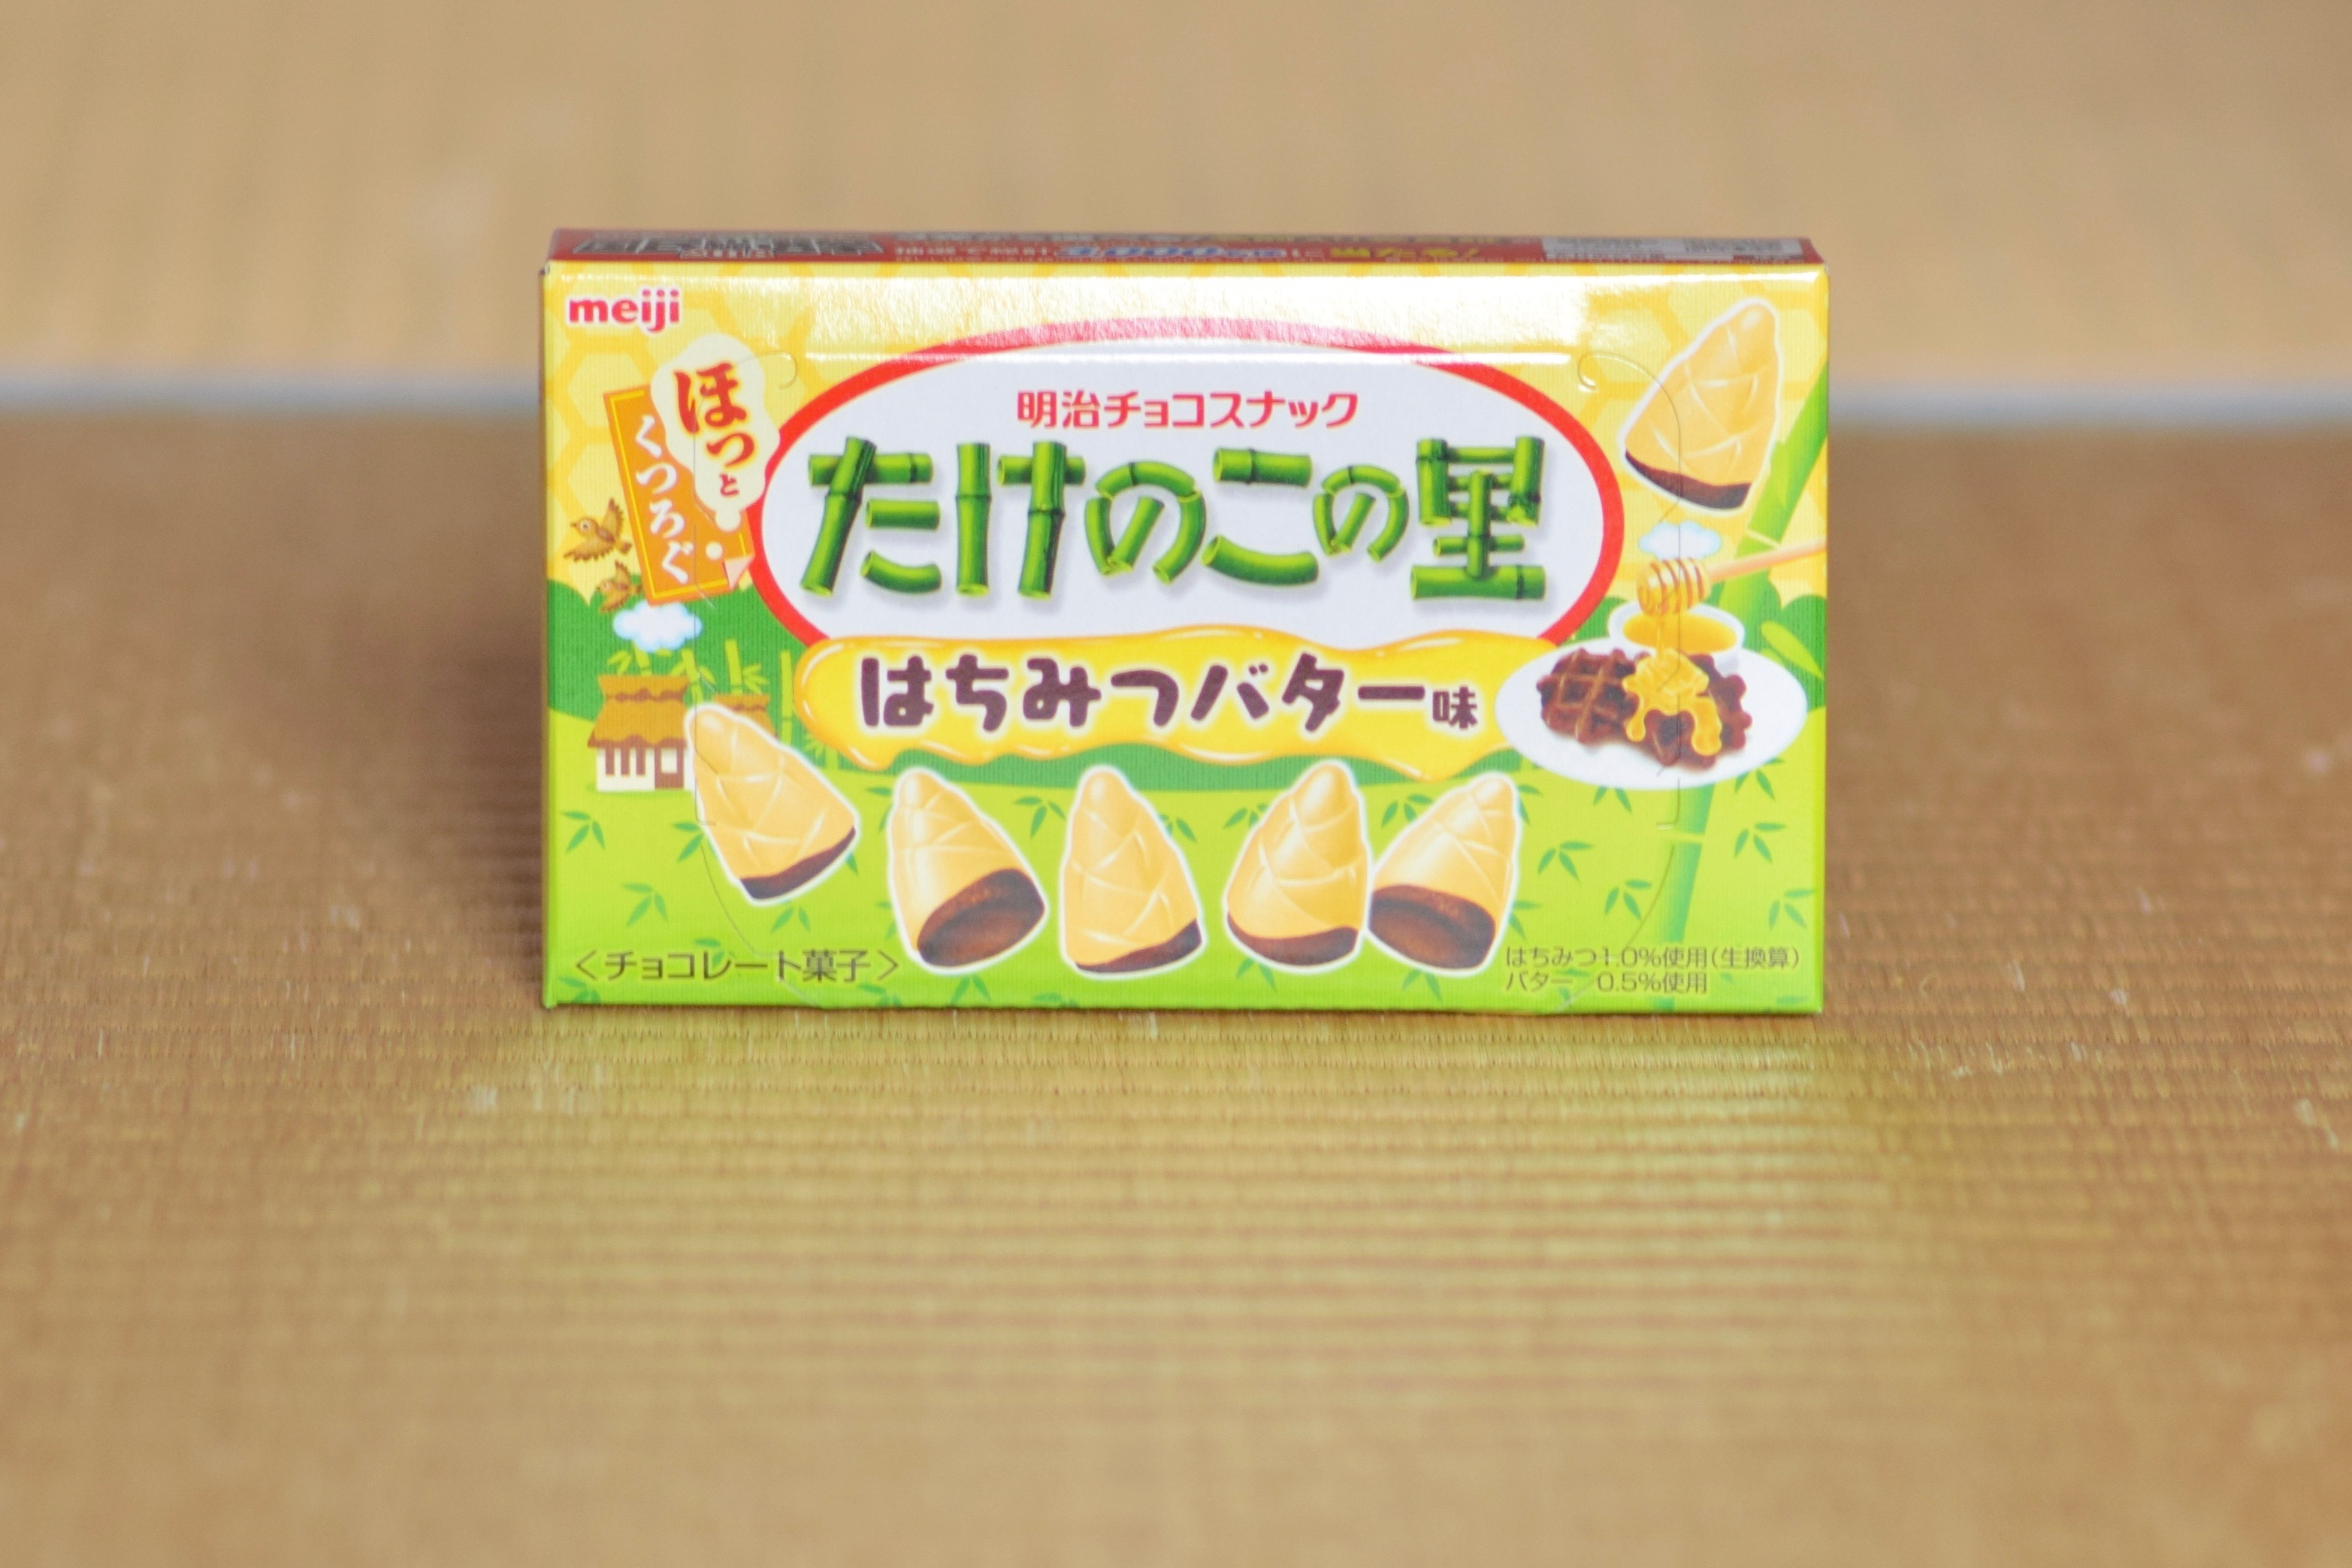 Takenoko no Sato candy